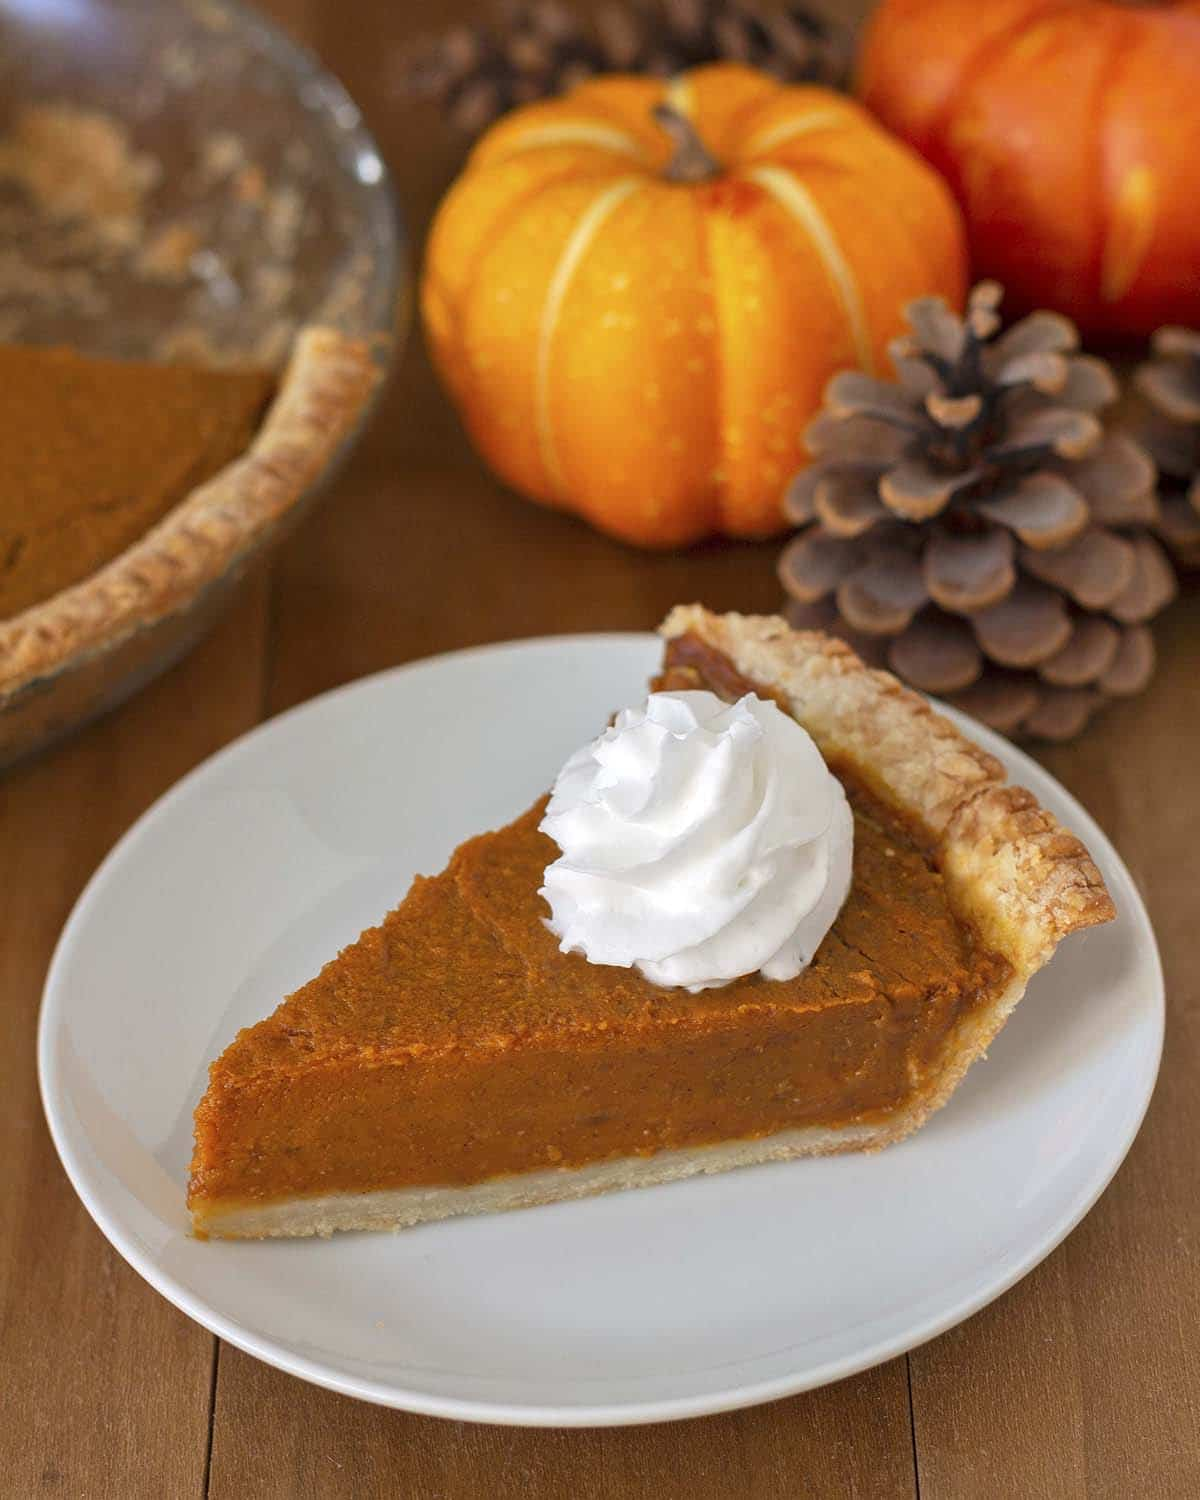 A slice of egg free pumpkin pie on a white plate, pie is topped with coconut whipped cream.